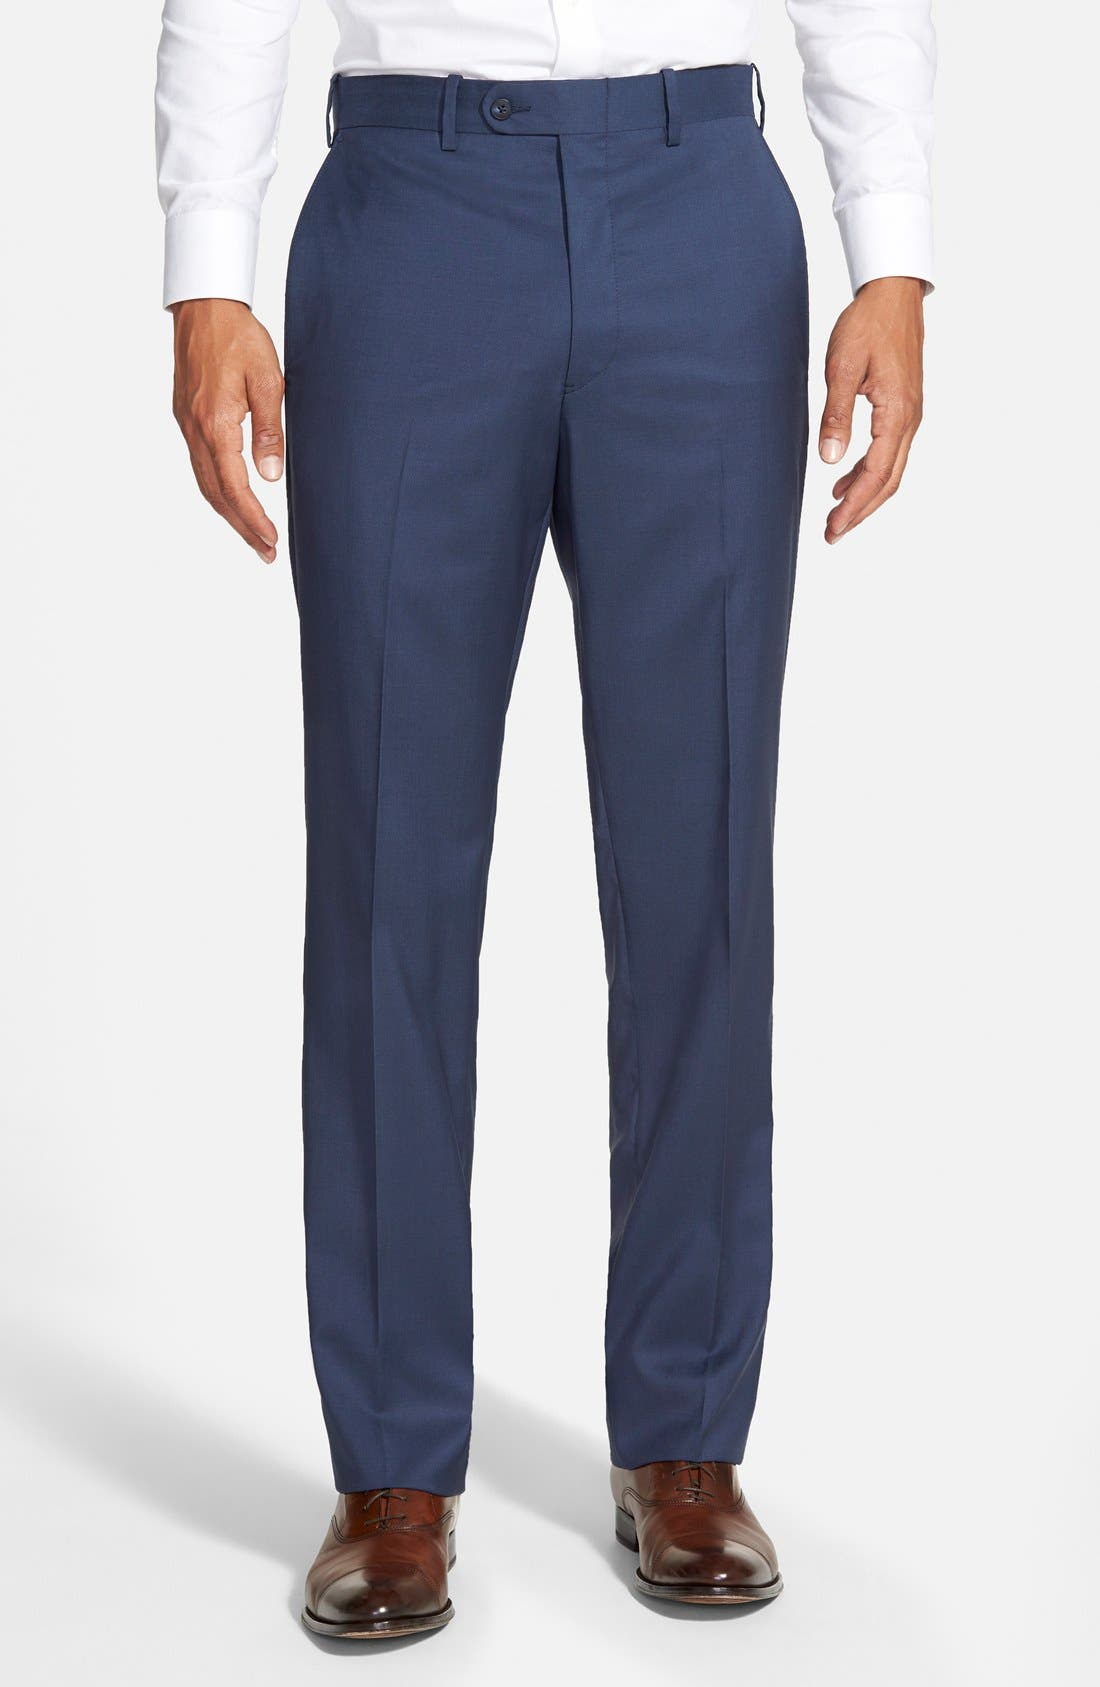 JB Britches 'Torino' Flat Front Wool Trousers